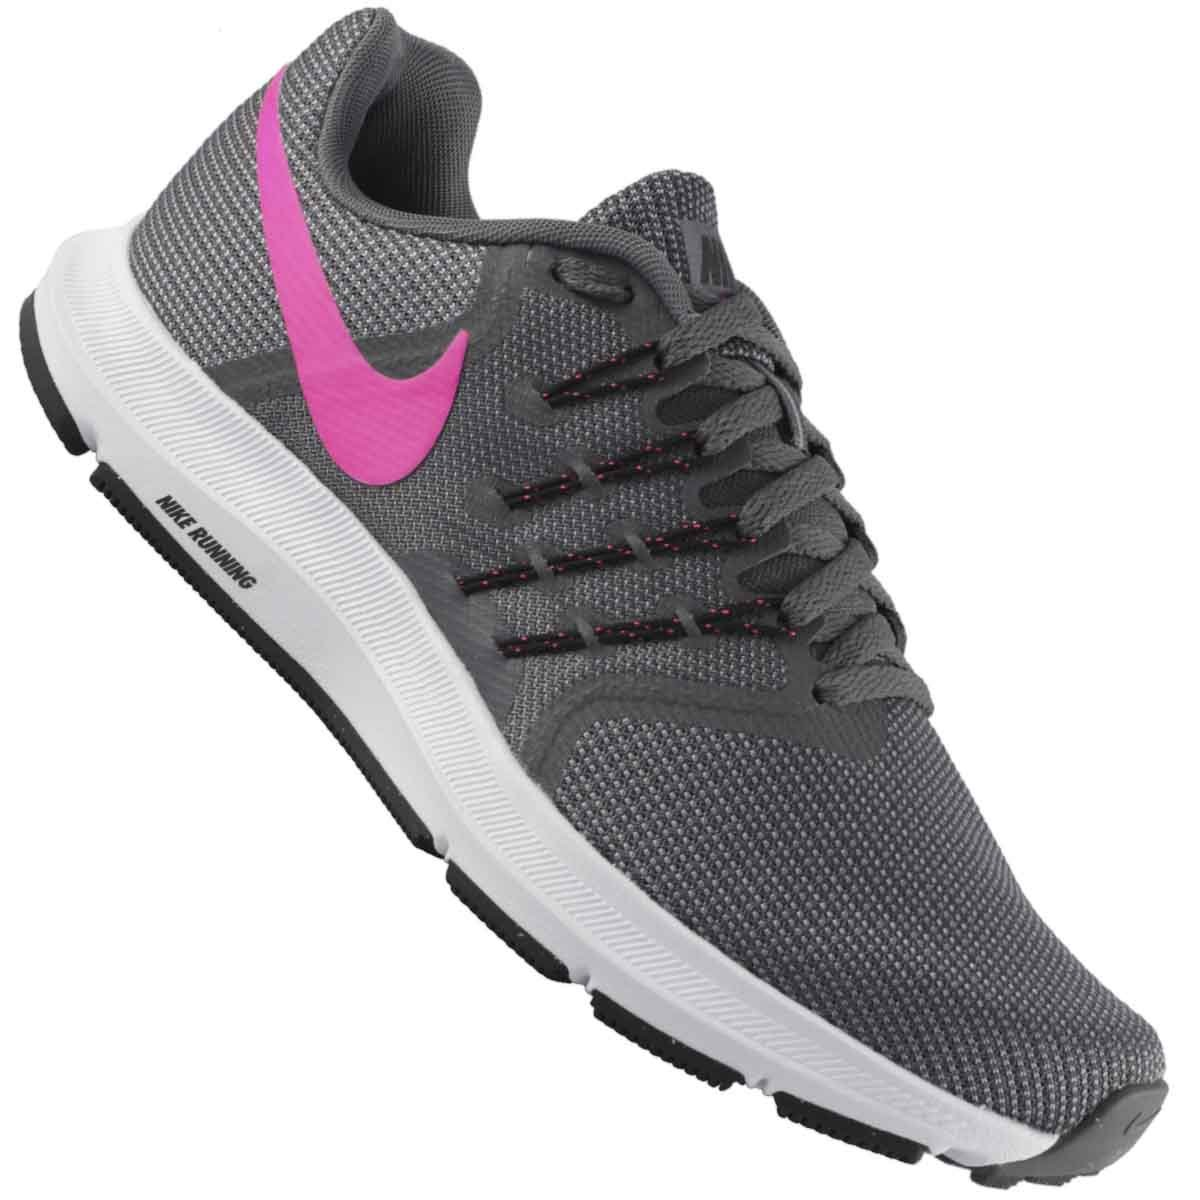 c089d88be5bb2 Tênis Nike Run Swift Feminino